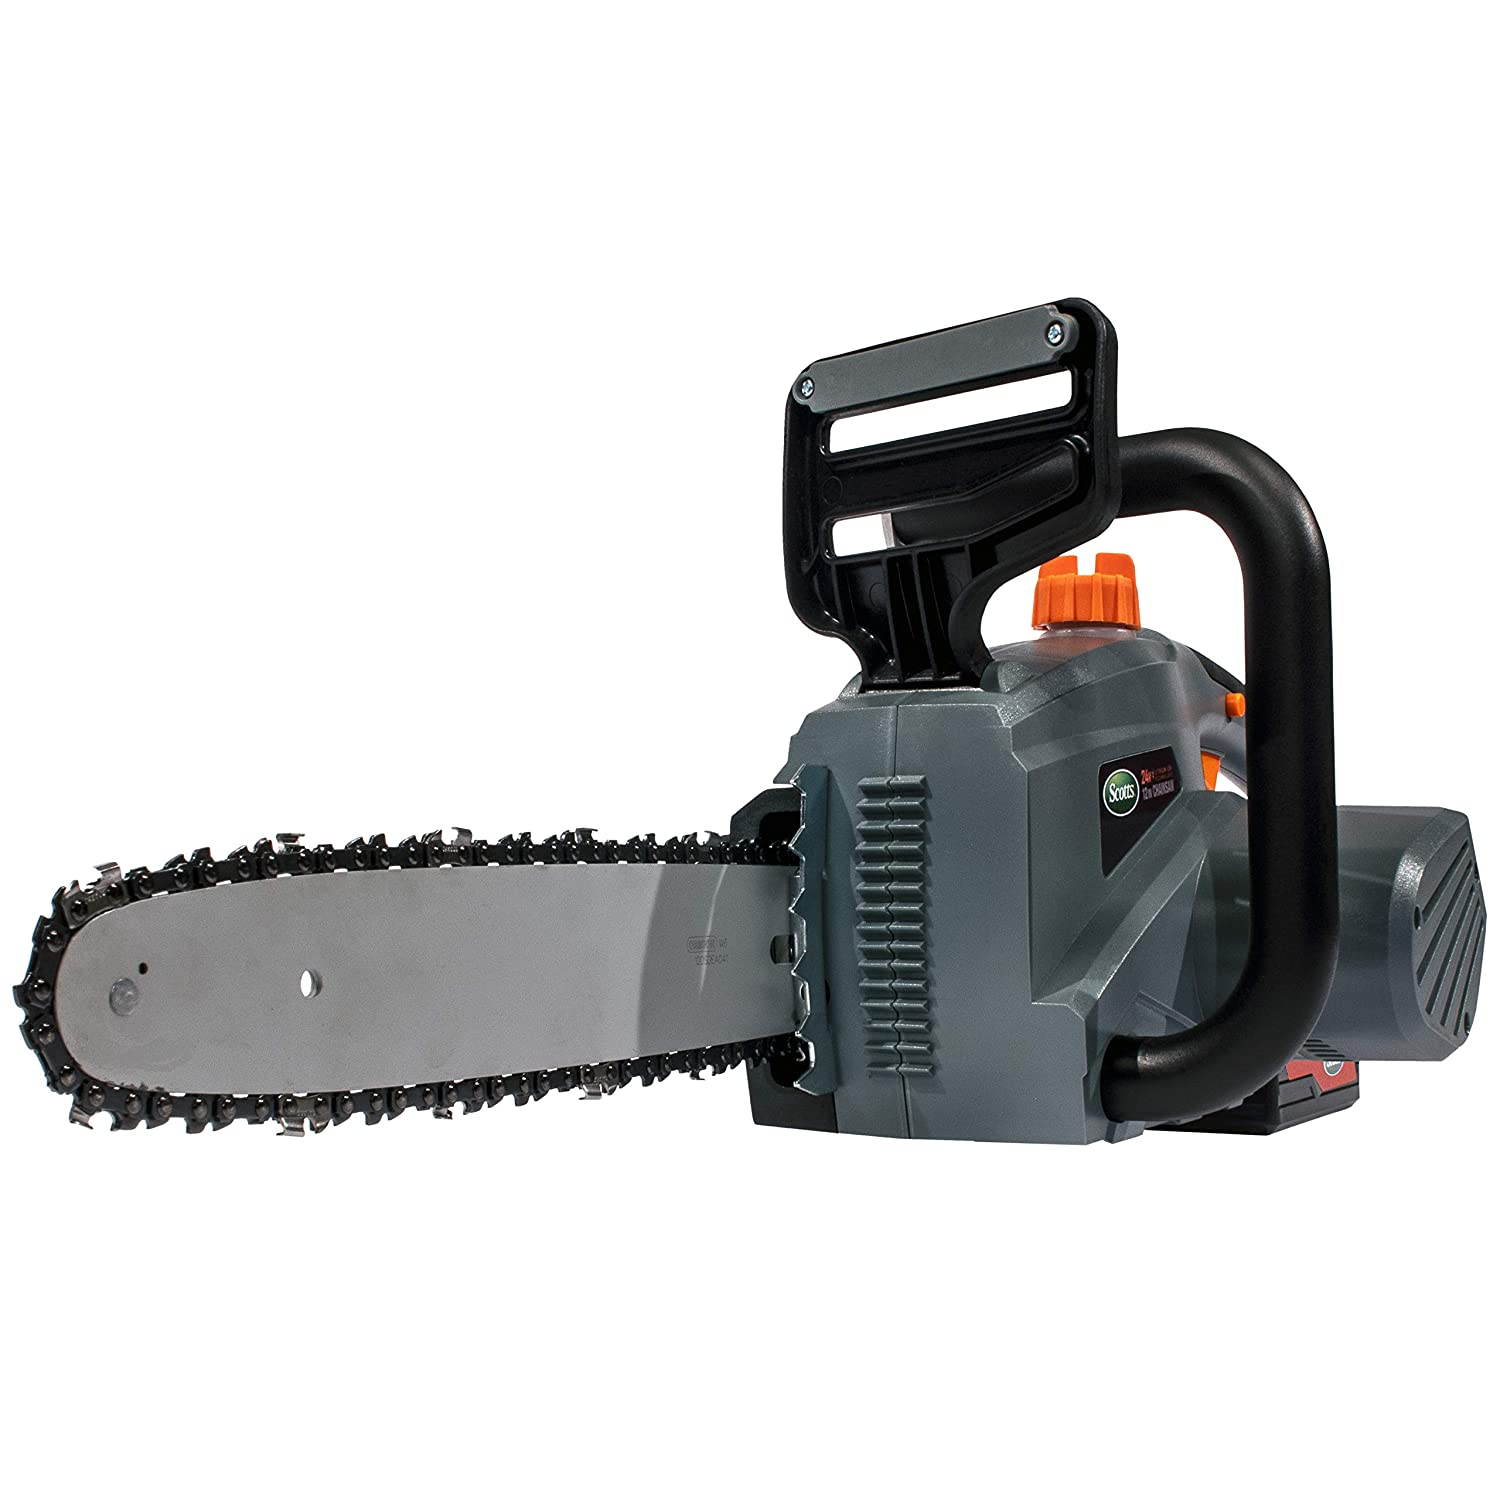 Scotts Outdoor Power Tools LCS31224S featured image 3